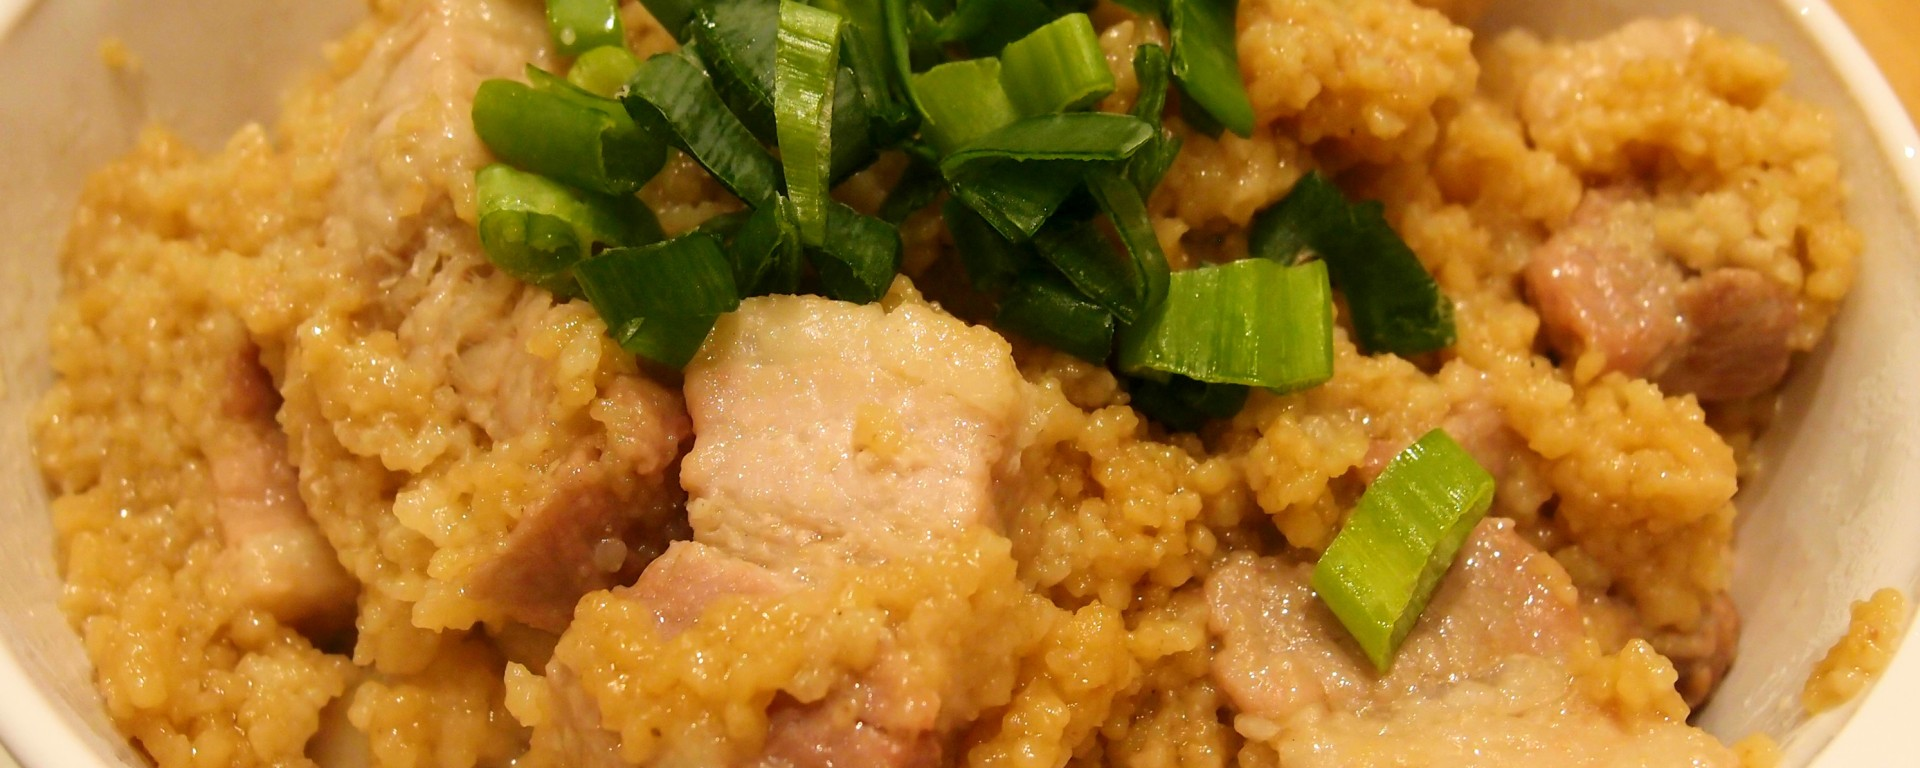 Fen_Zheng_Rou_Steamed_Broken_Rice_Couscous_with_Meat